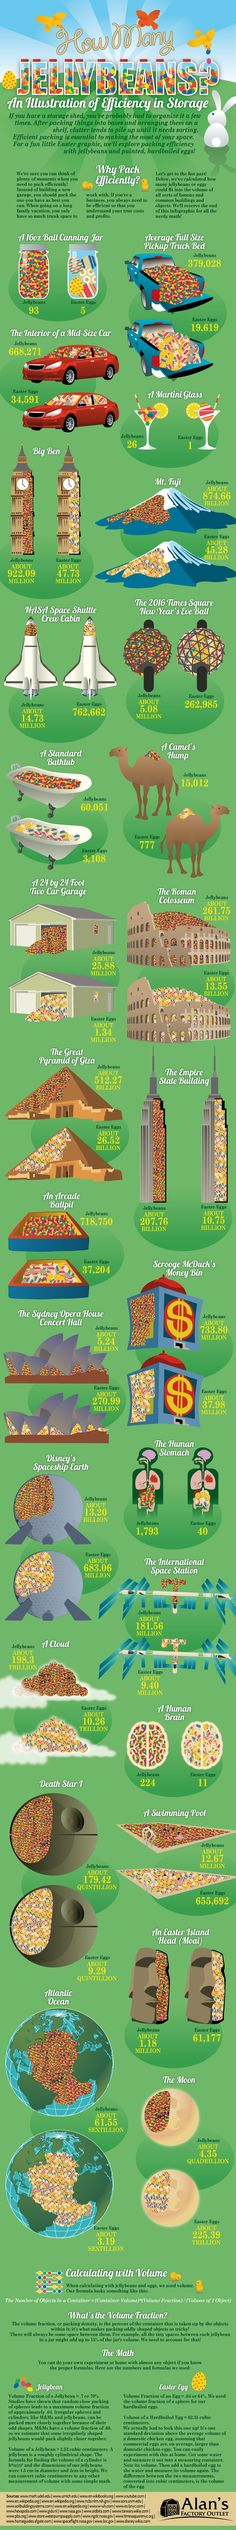 How Many Jellybeans? #Infographic #Food